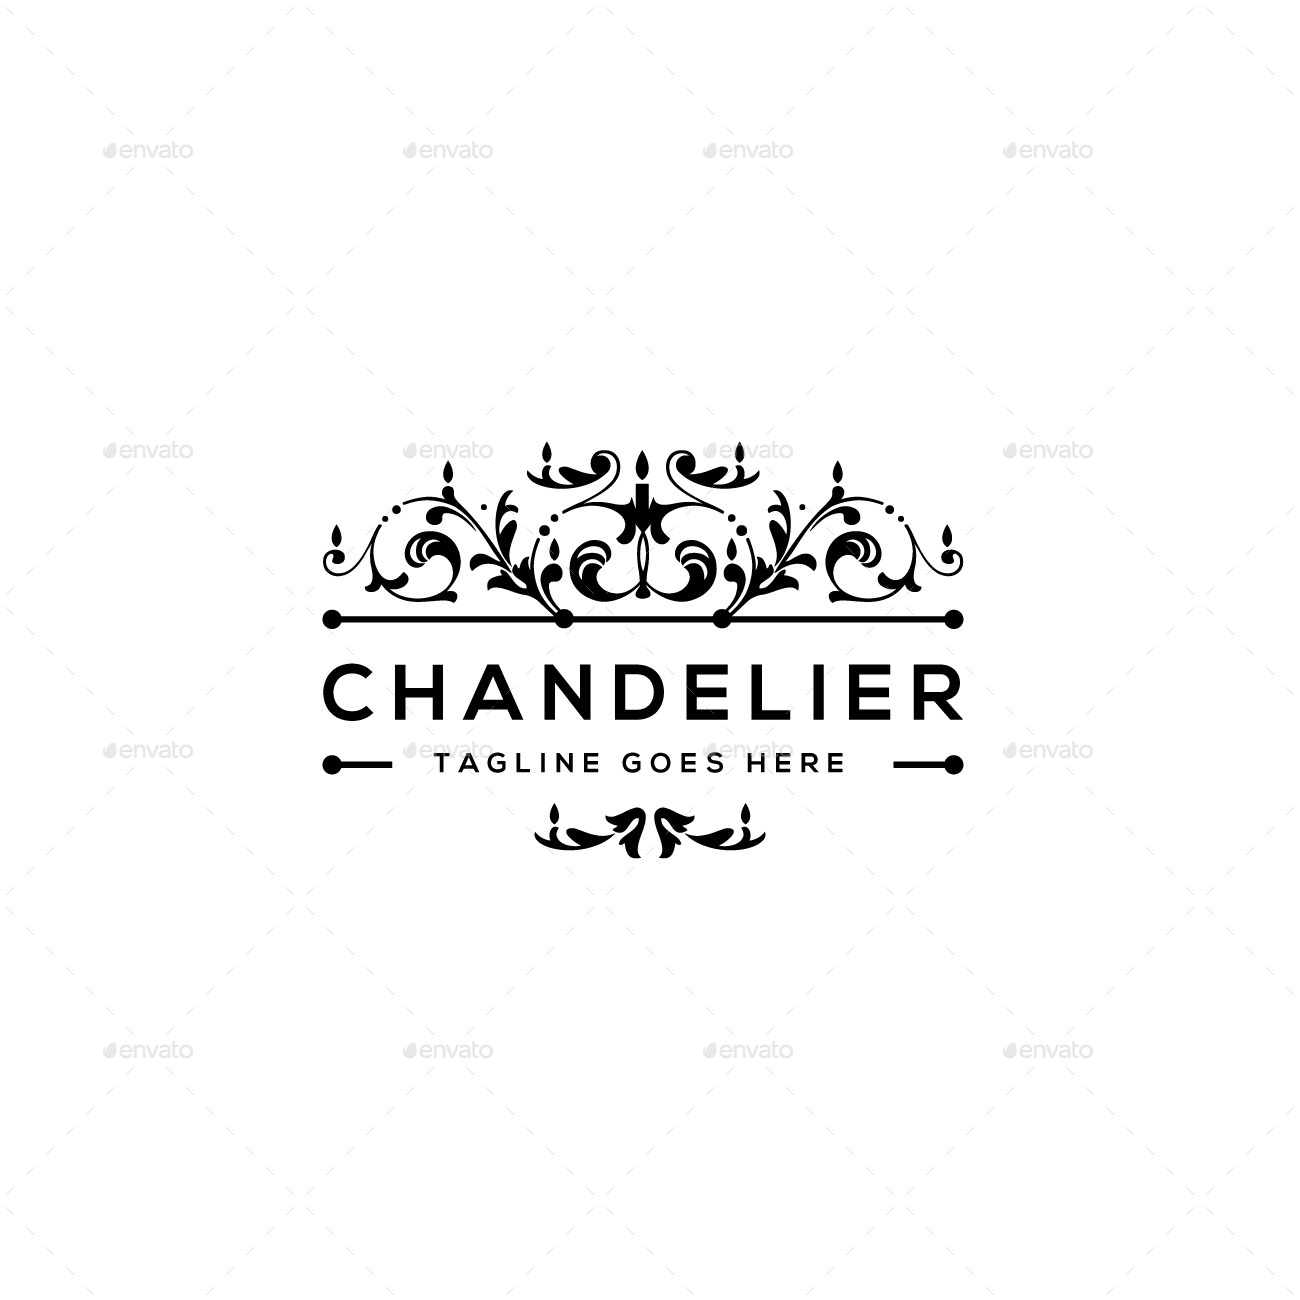 Chandelier logo template by designgarrad graphicriver chandelier logo template arubaitofo Image collections